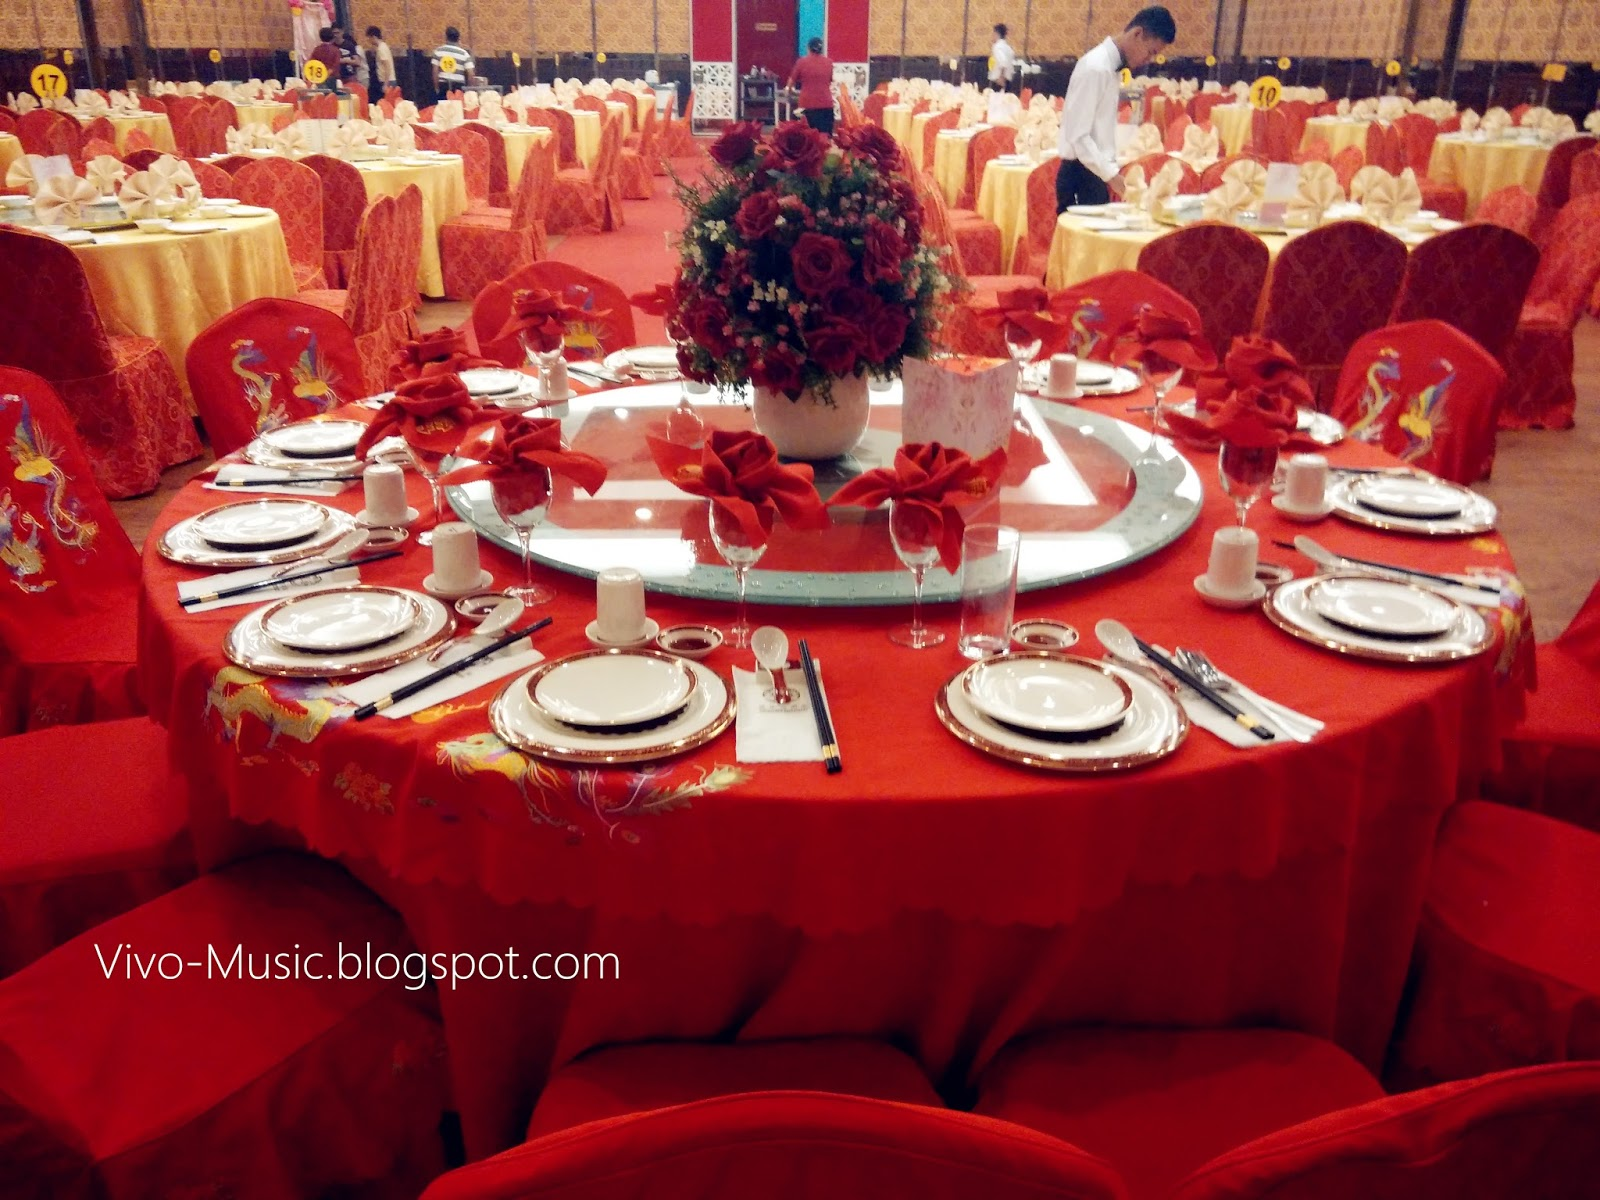 Vivo music live bandkl it is a hotspot for wedding dinner to be held in kepong area junglespirit Choice Image